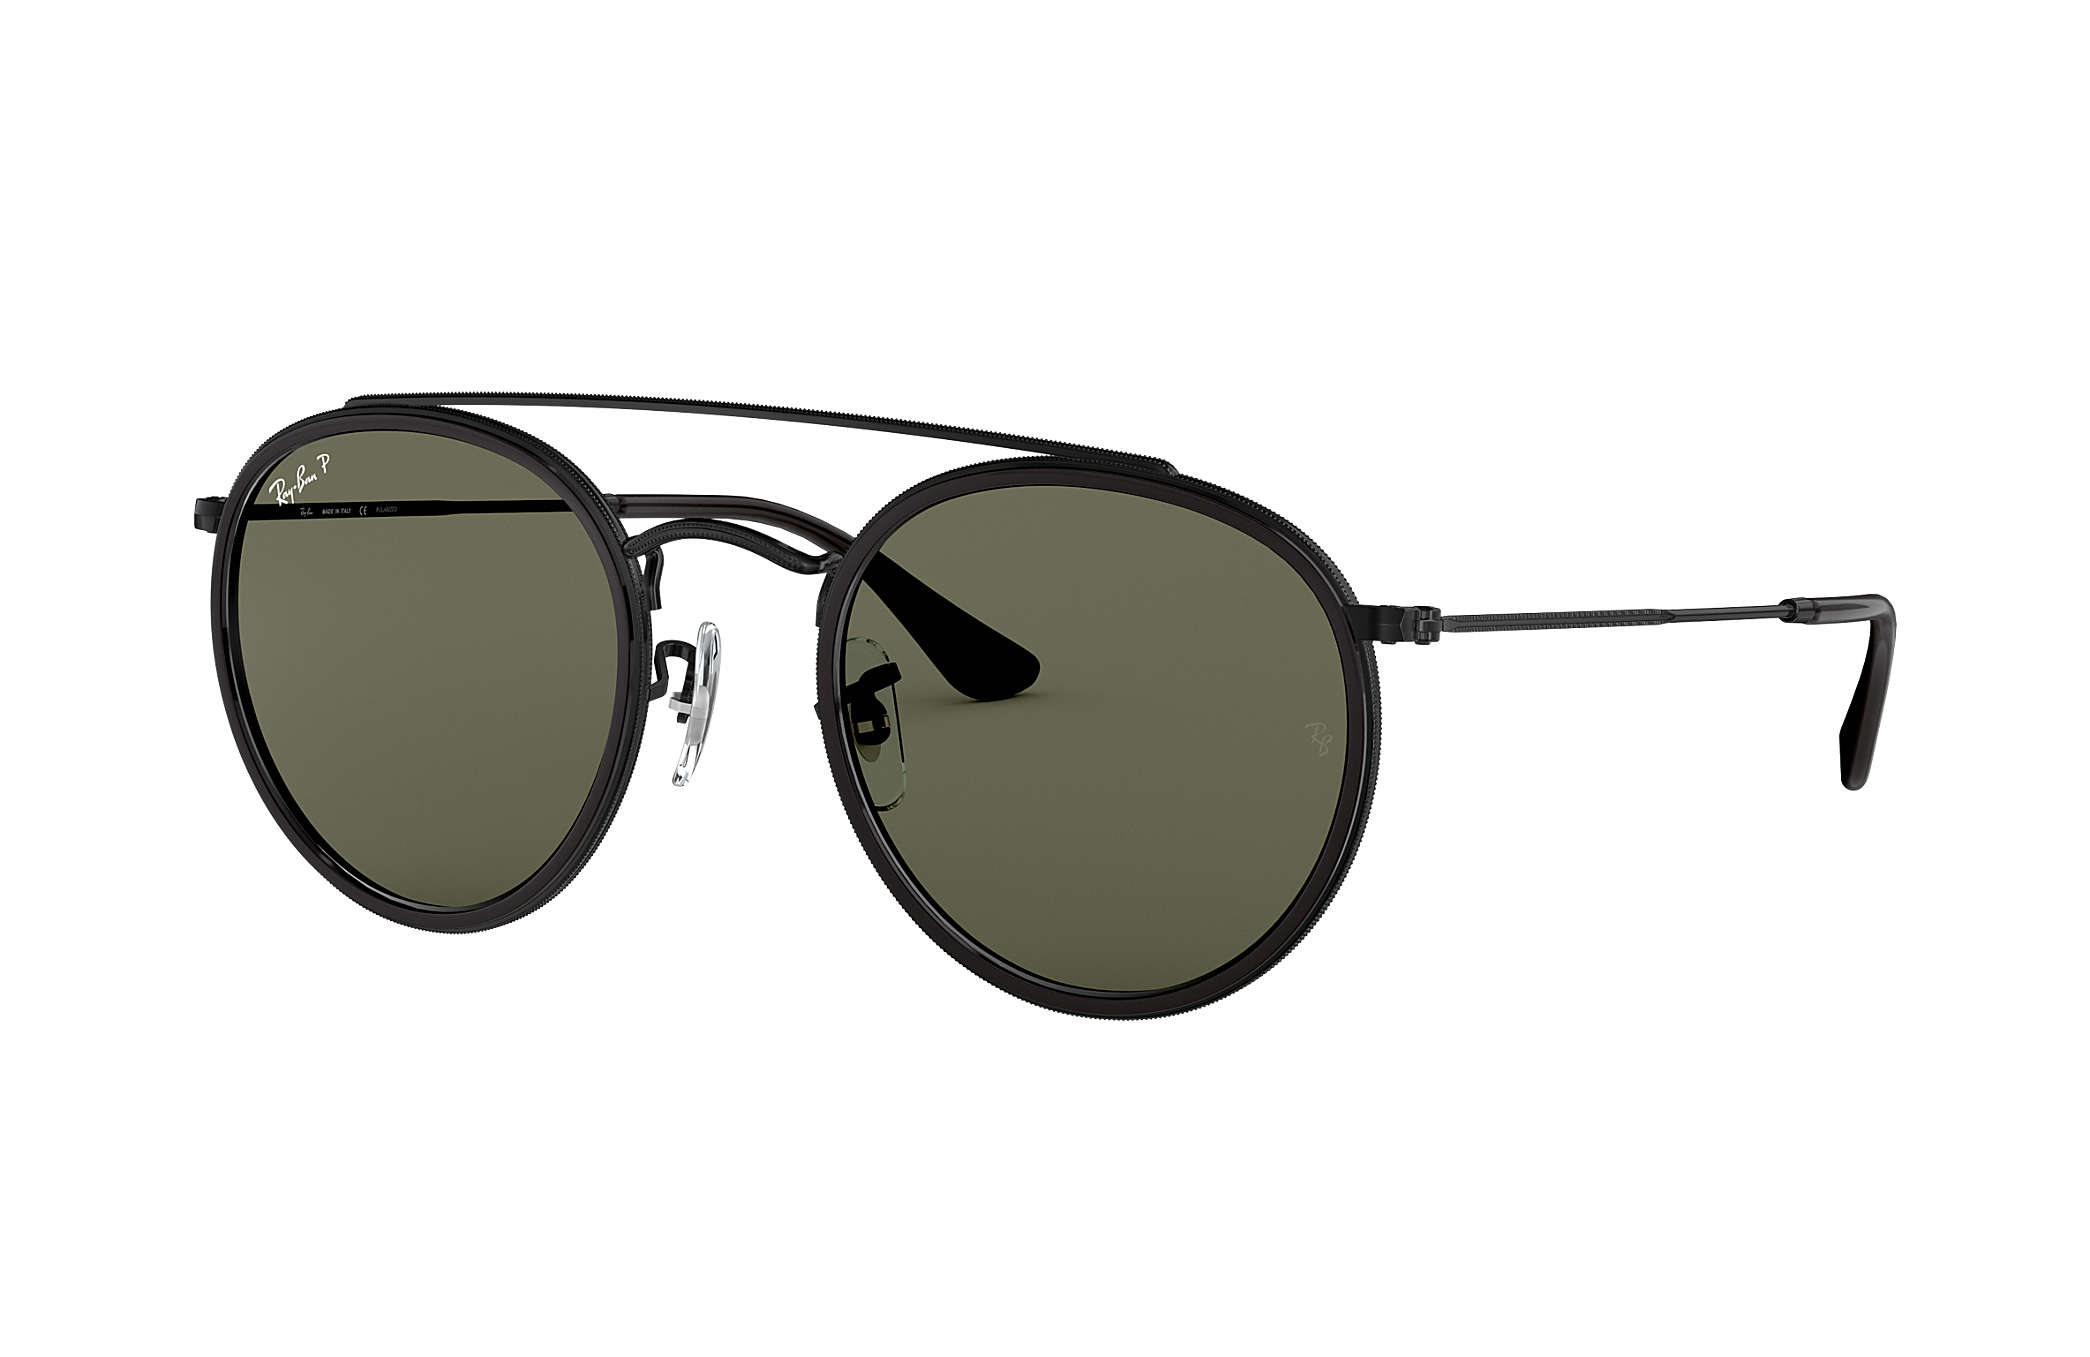 Ray-Ban Round Double Bridge RB3647N Black - Metal - Green Polarized ... 2e8ced1272d46